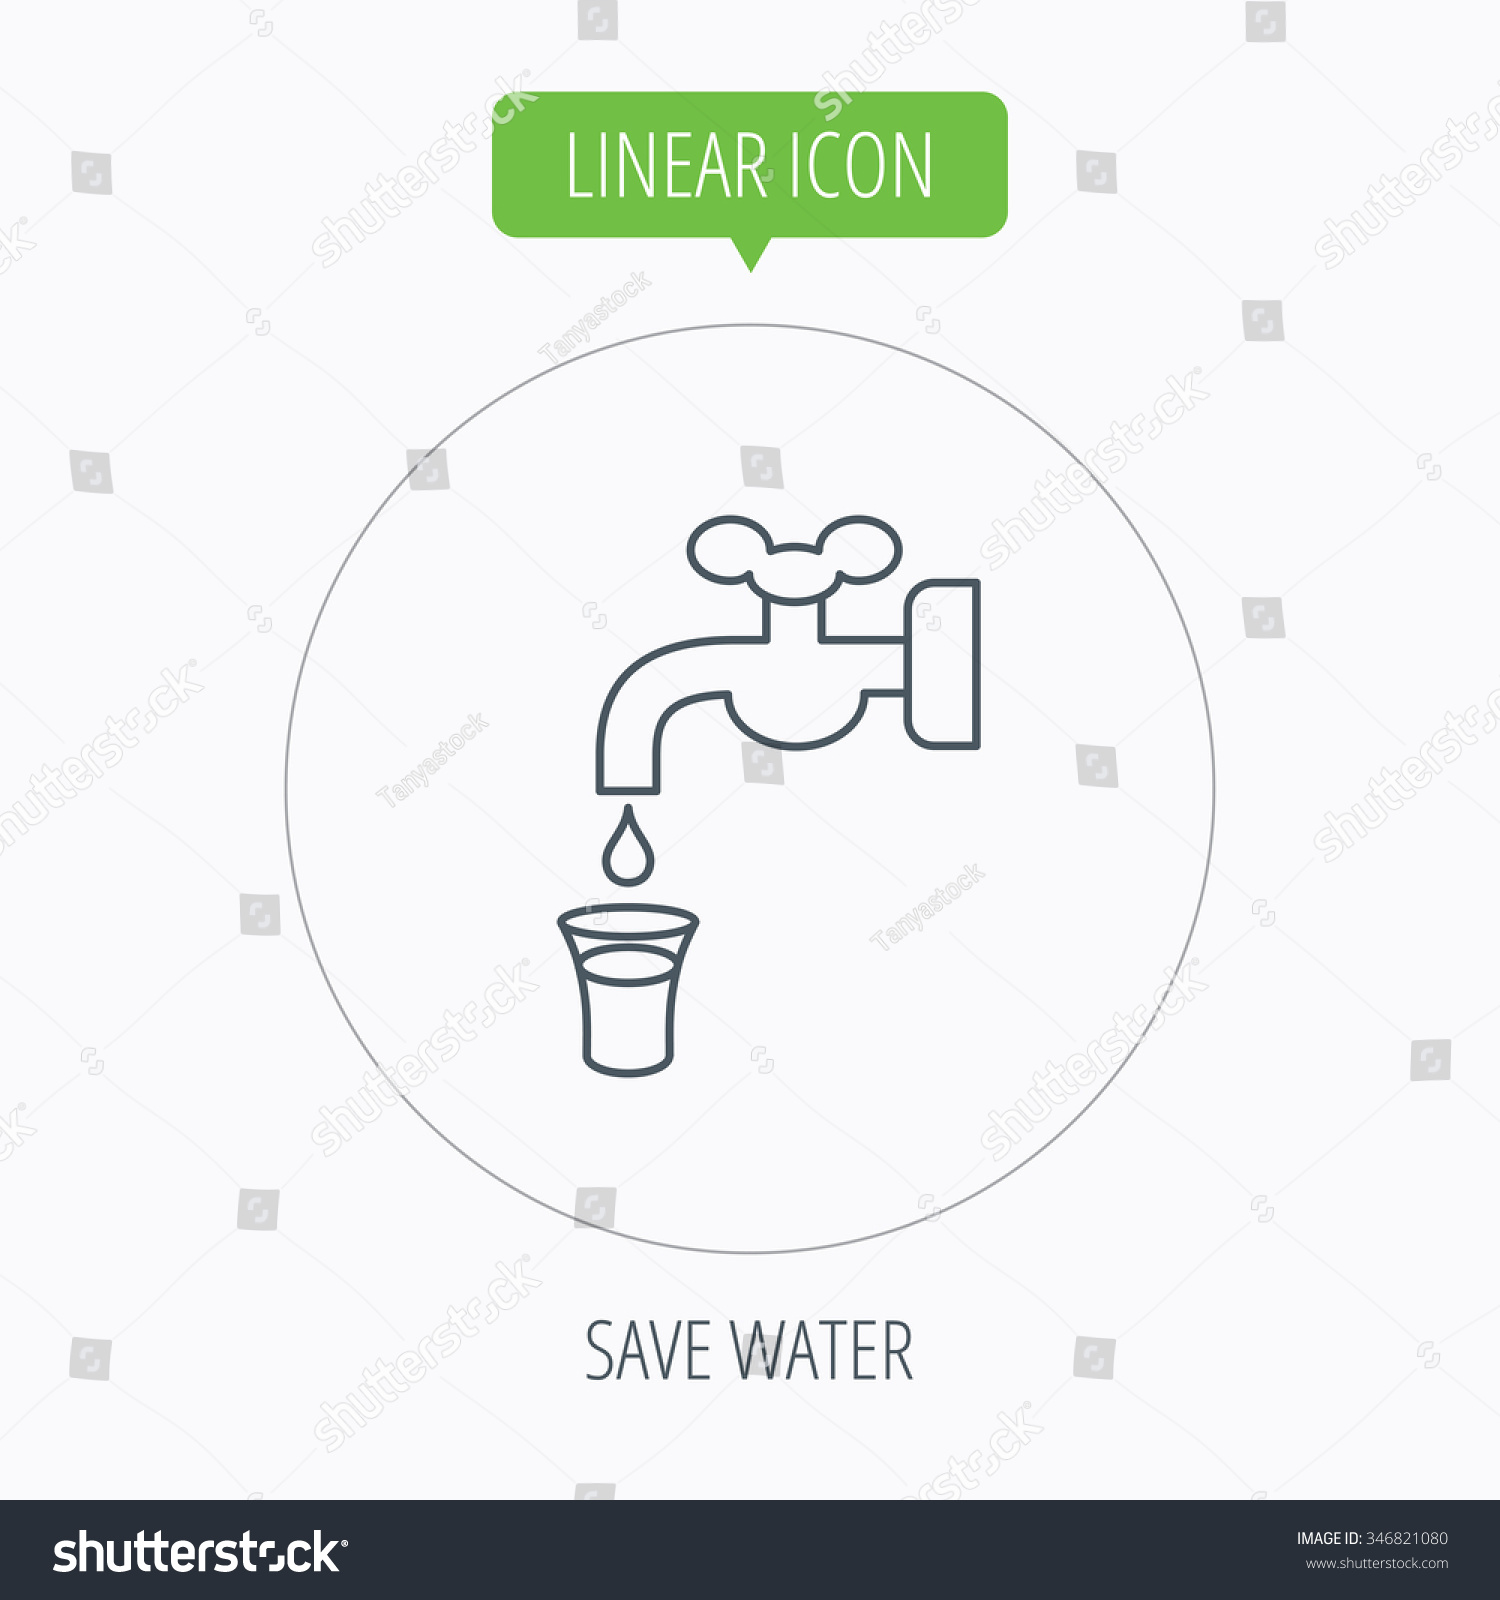 Save Water Icon Crane Faucet Drop Stock Illustration 346821080 ...